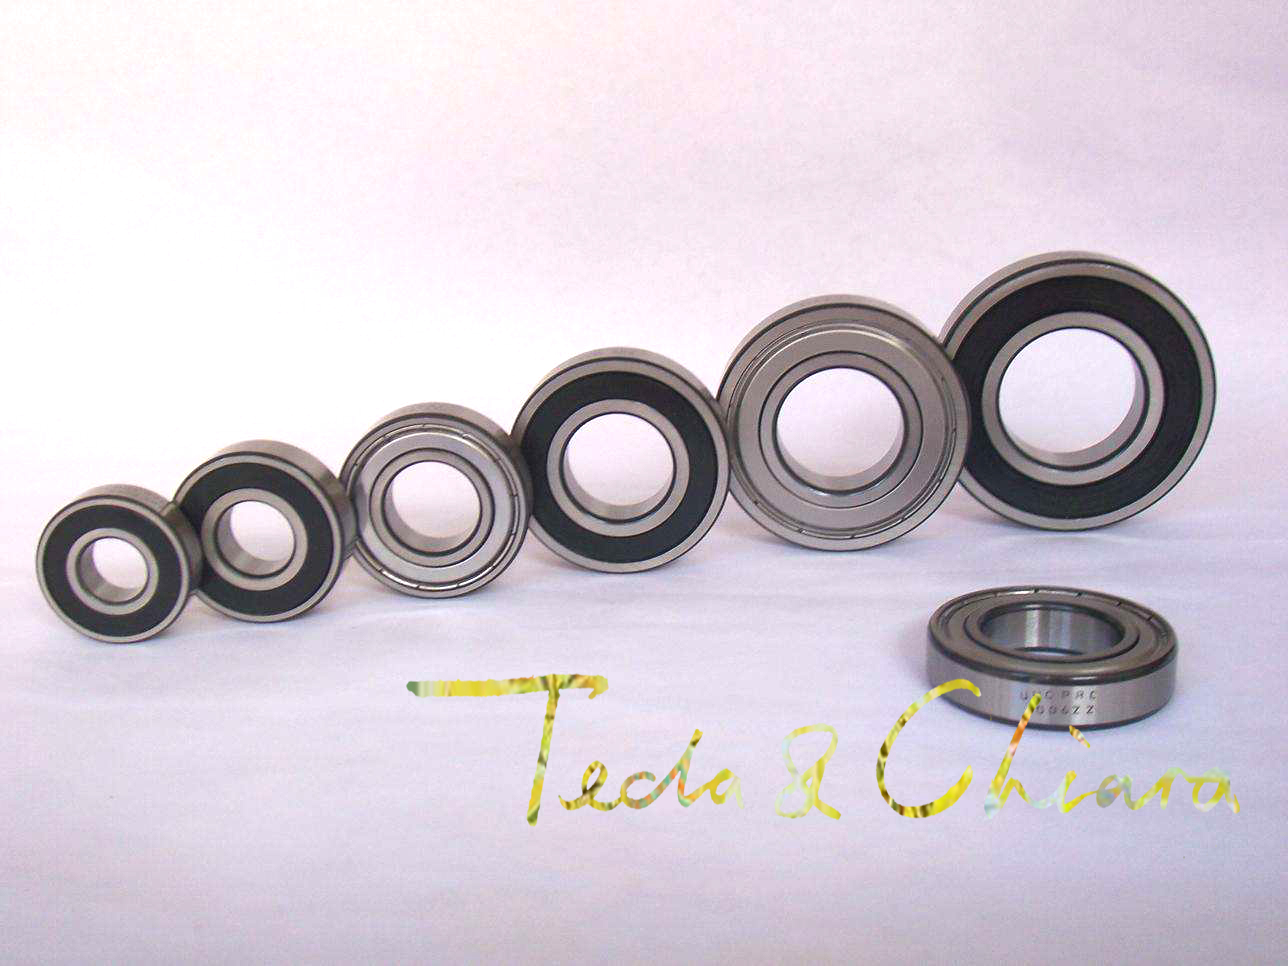 6001 6001ZZ 6001RS 6001-2Z 6001Z 6001-2RS ZZ RS RZ 2RZ Deep Groove Ball Bearings 12 x 28 x 8mm High Quality 604 604zz 604rs 604 2z 604z 604 2rs zz rs rz 2rz deep groove ball bearings 4 x 12 x 4mm high quality